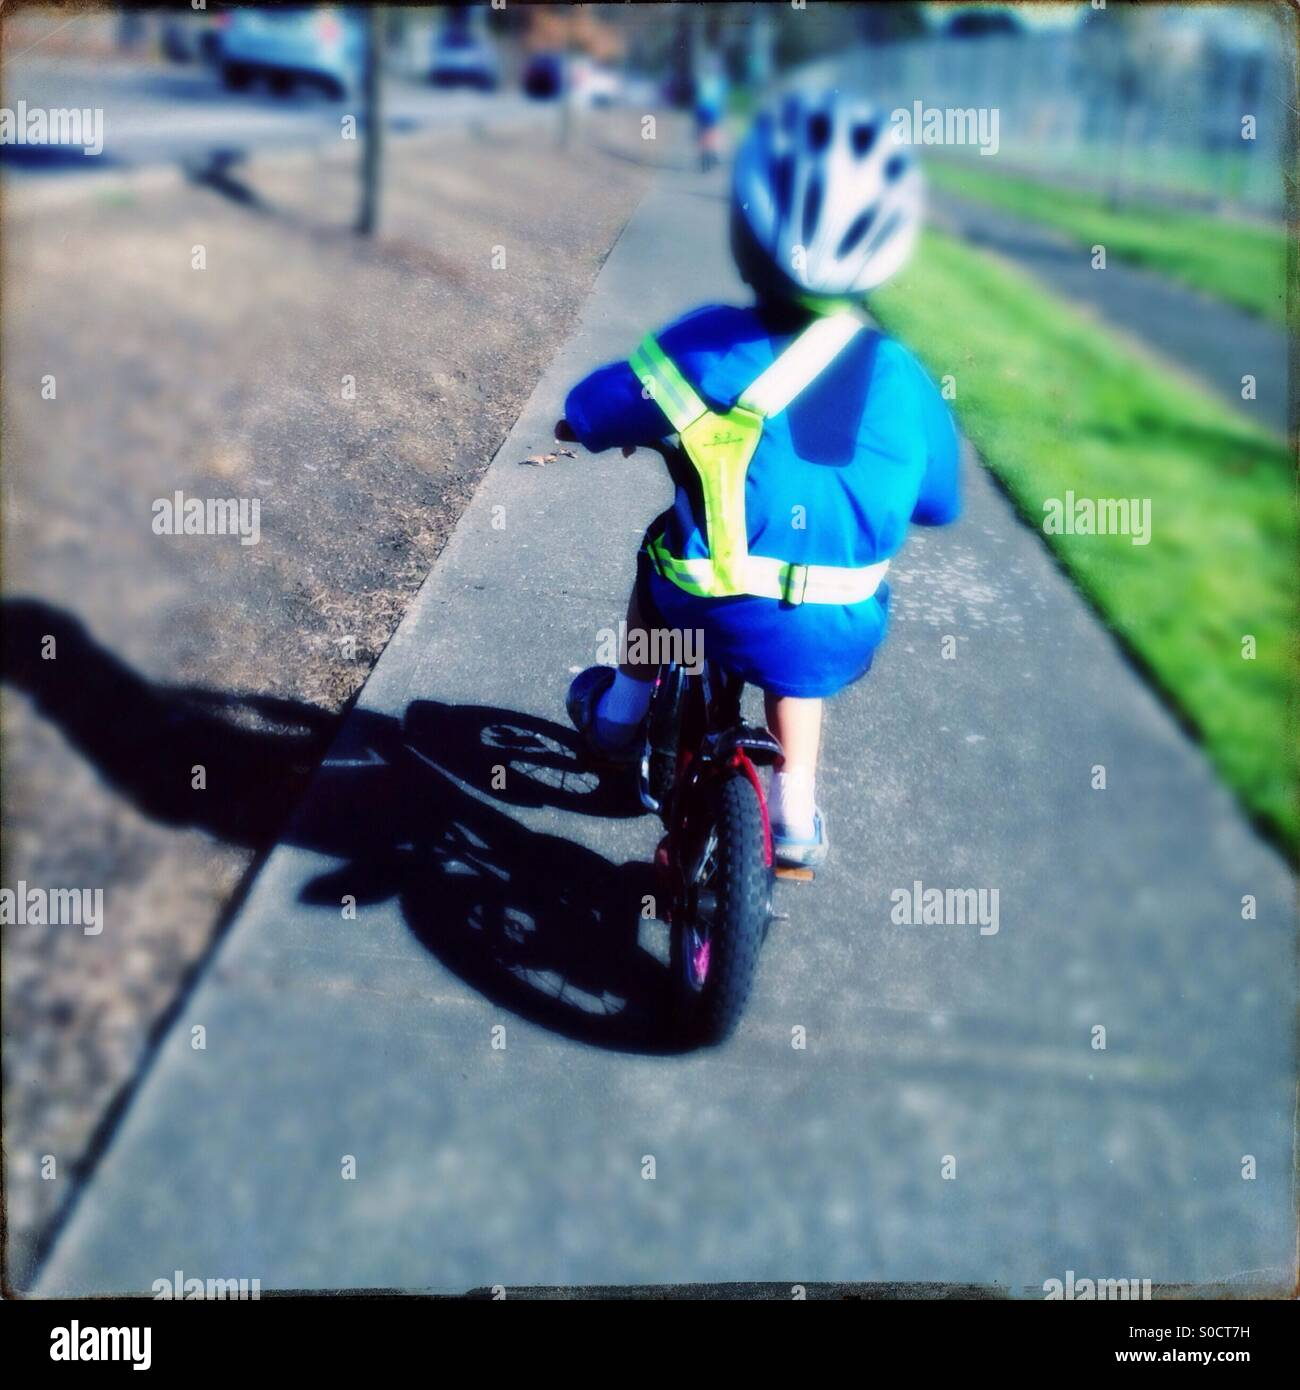 Child riding bicycle on sidewalk wearing reflective safety vest and bike helmet - Stock Image